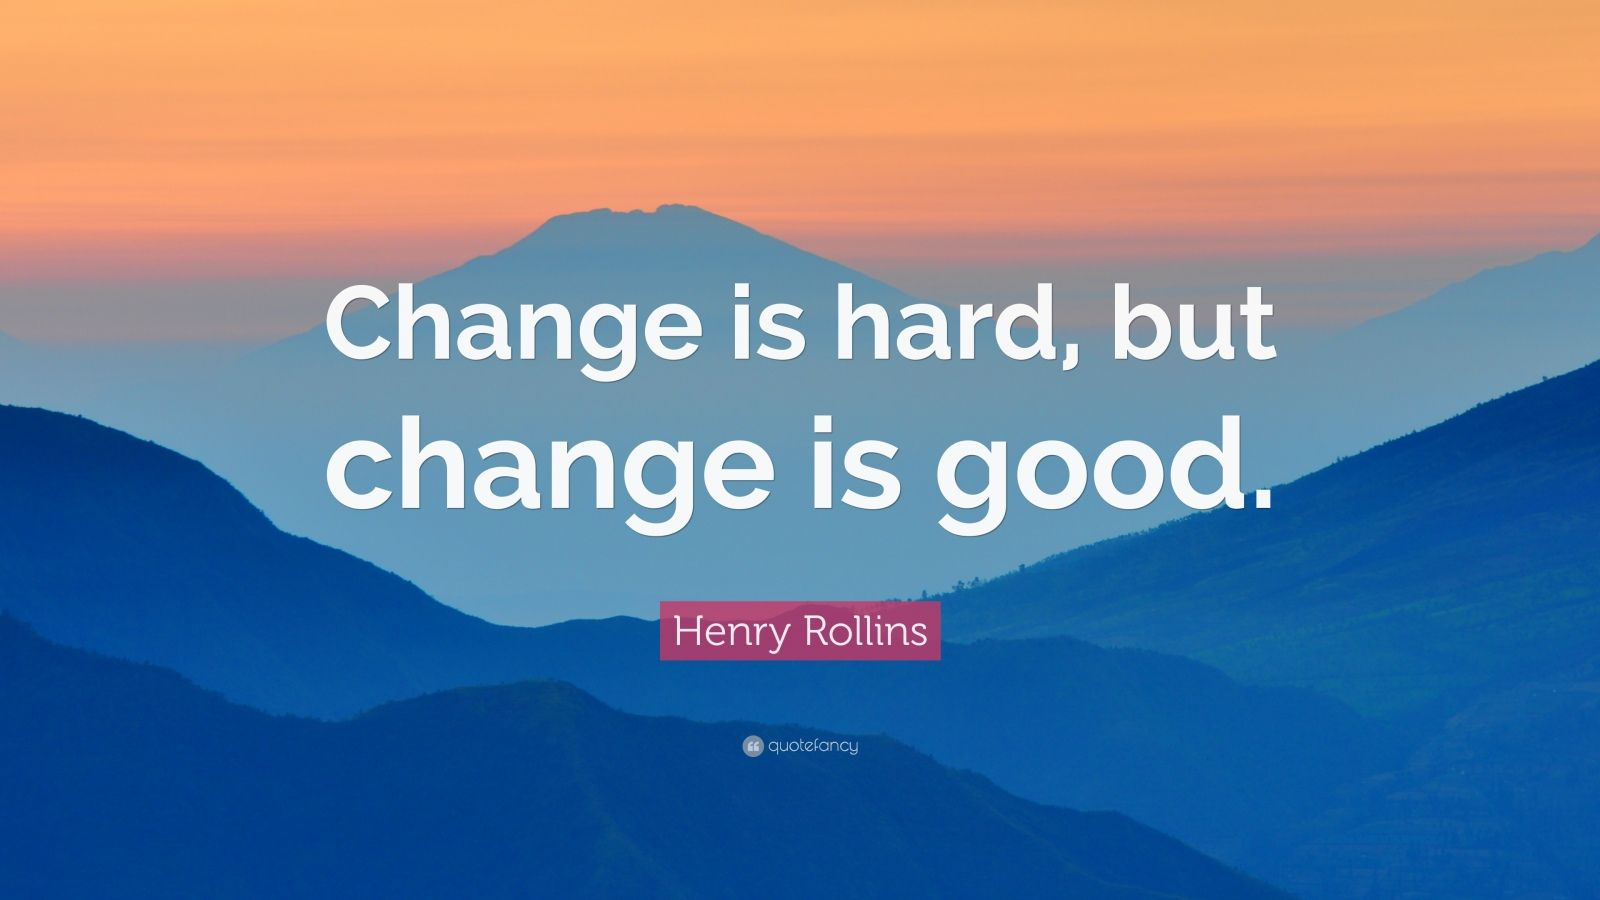 Laughing Wallpaper With Quotes Henry Rollins Quote Change Is Hard But Change Is Good